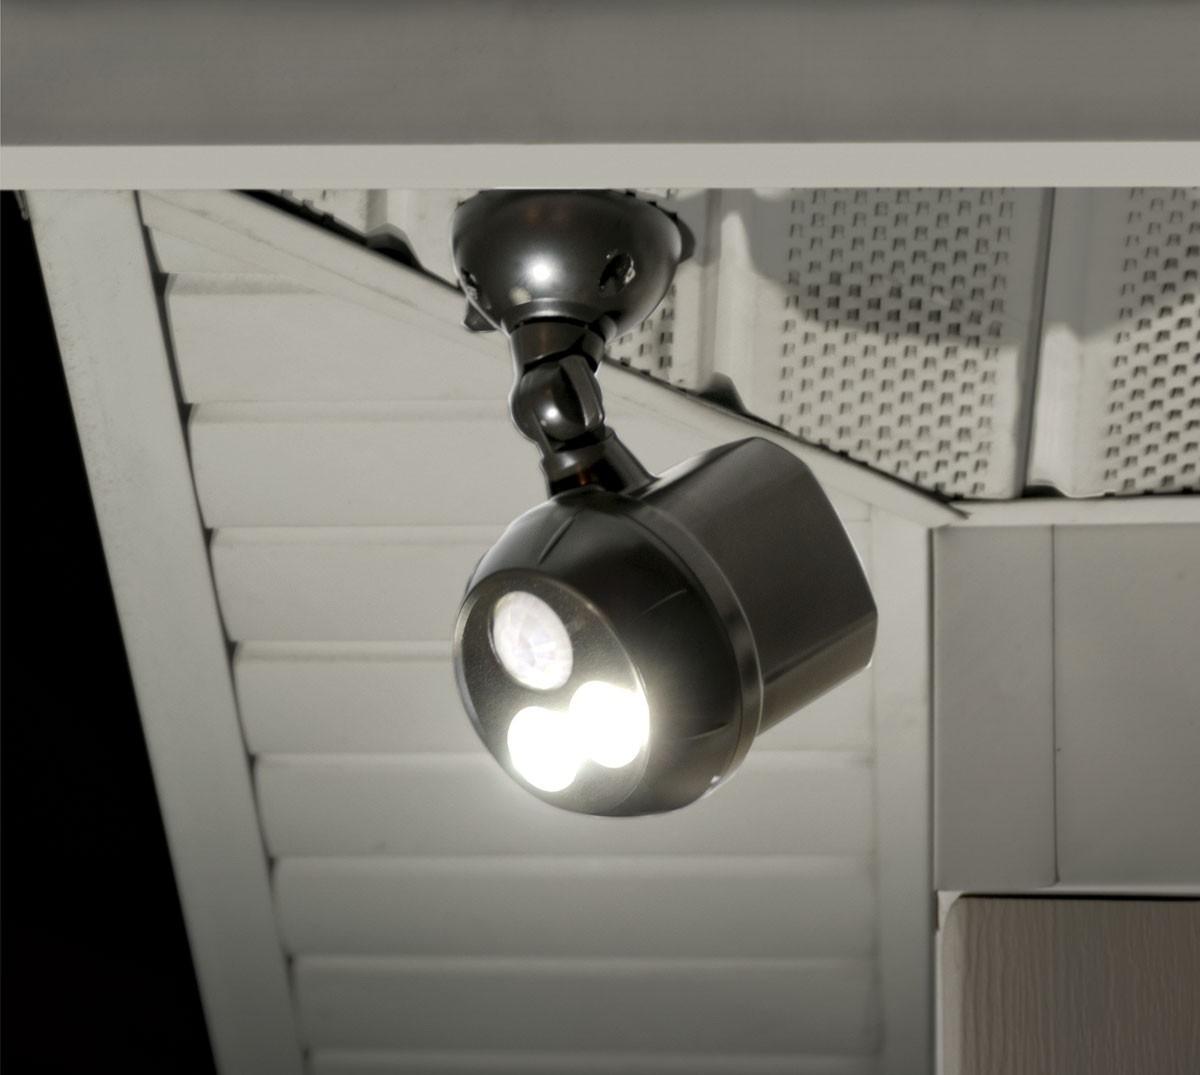 Current Outdoor Lighting: Awesome Wireless Outside Lights Portable Outdoor With Regard To Battery Operated Outdoor Lights At Wayfair (View 7 of 20)